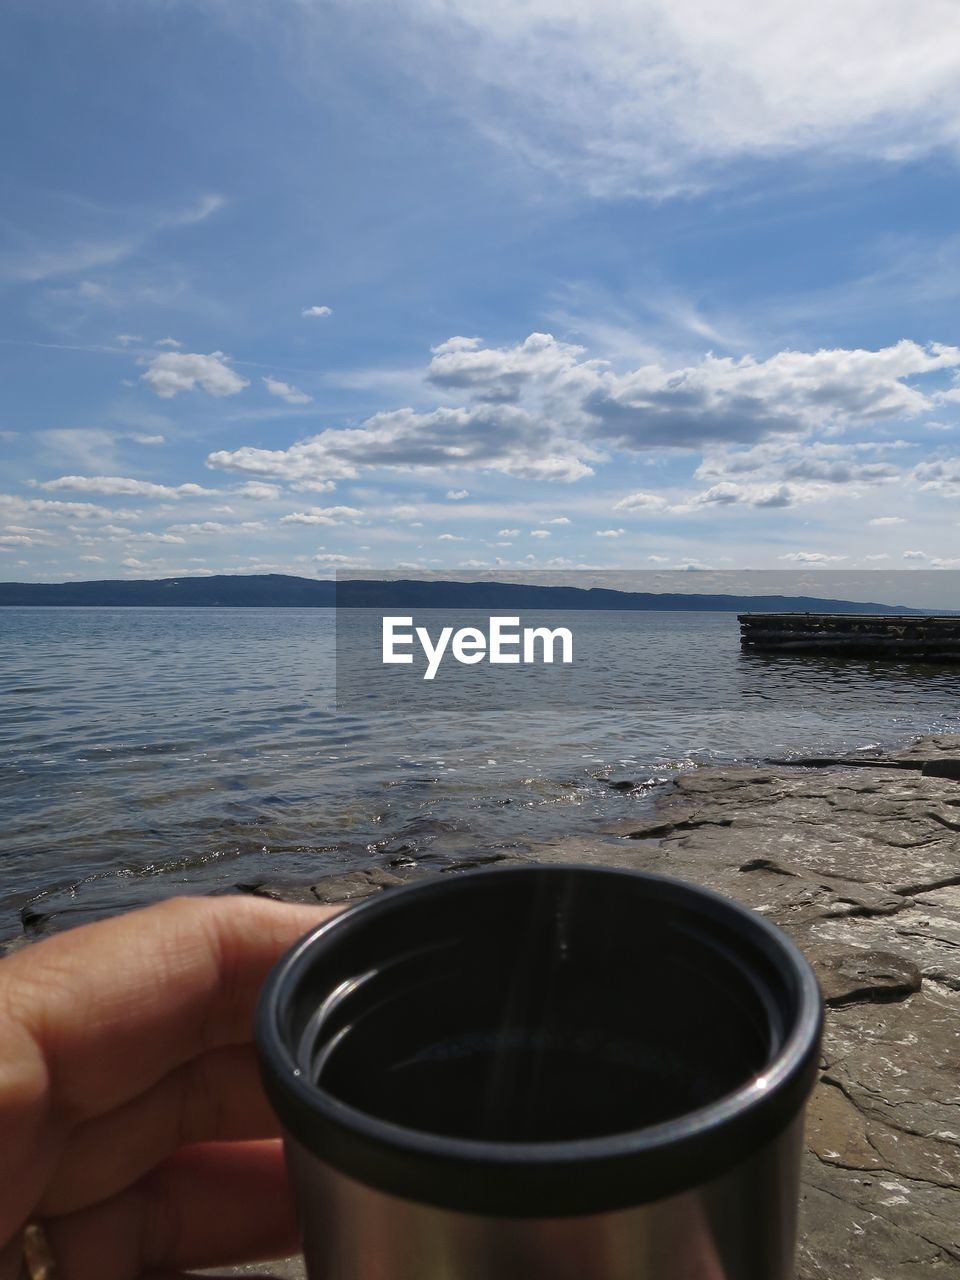 sky, hand, one person, human hand, human body part, water, holding, food and drink, cloud - sky, sea, real people, day, unrecognizable person, drink, refreshment, cup, mug, coffee, nature, body part, hot drink, outdoors, glass, finger, human limb